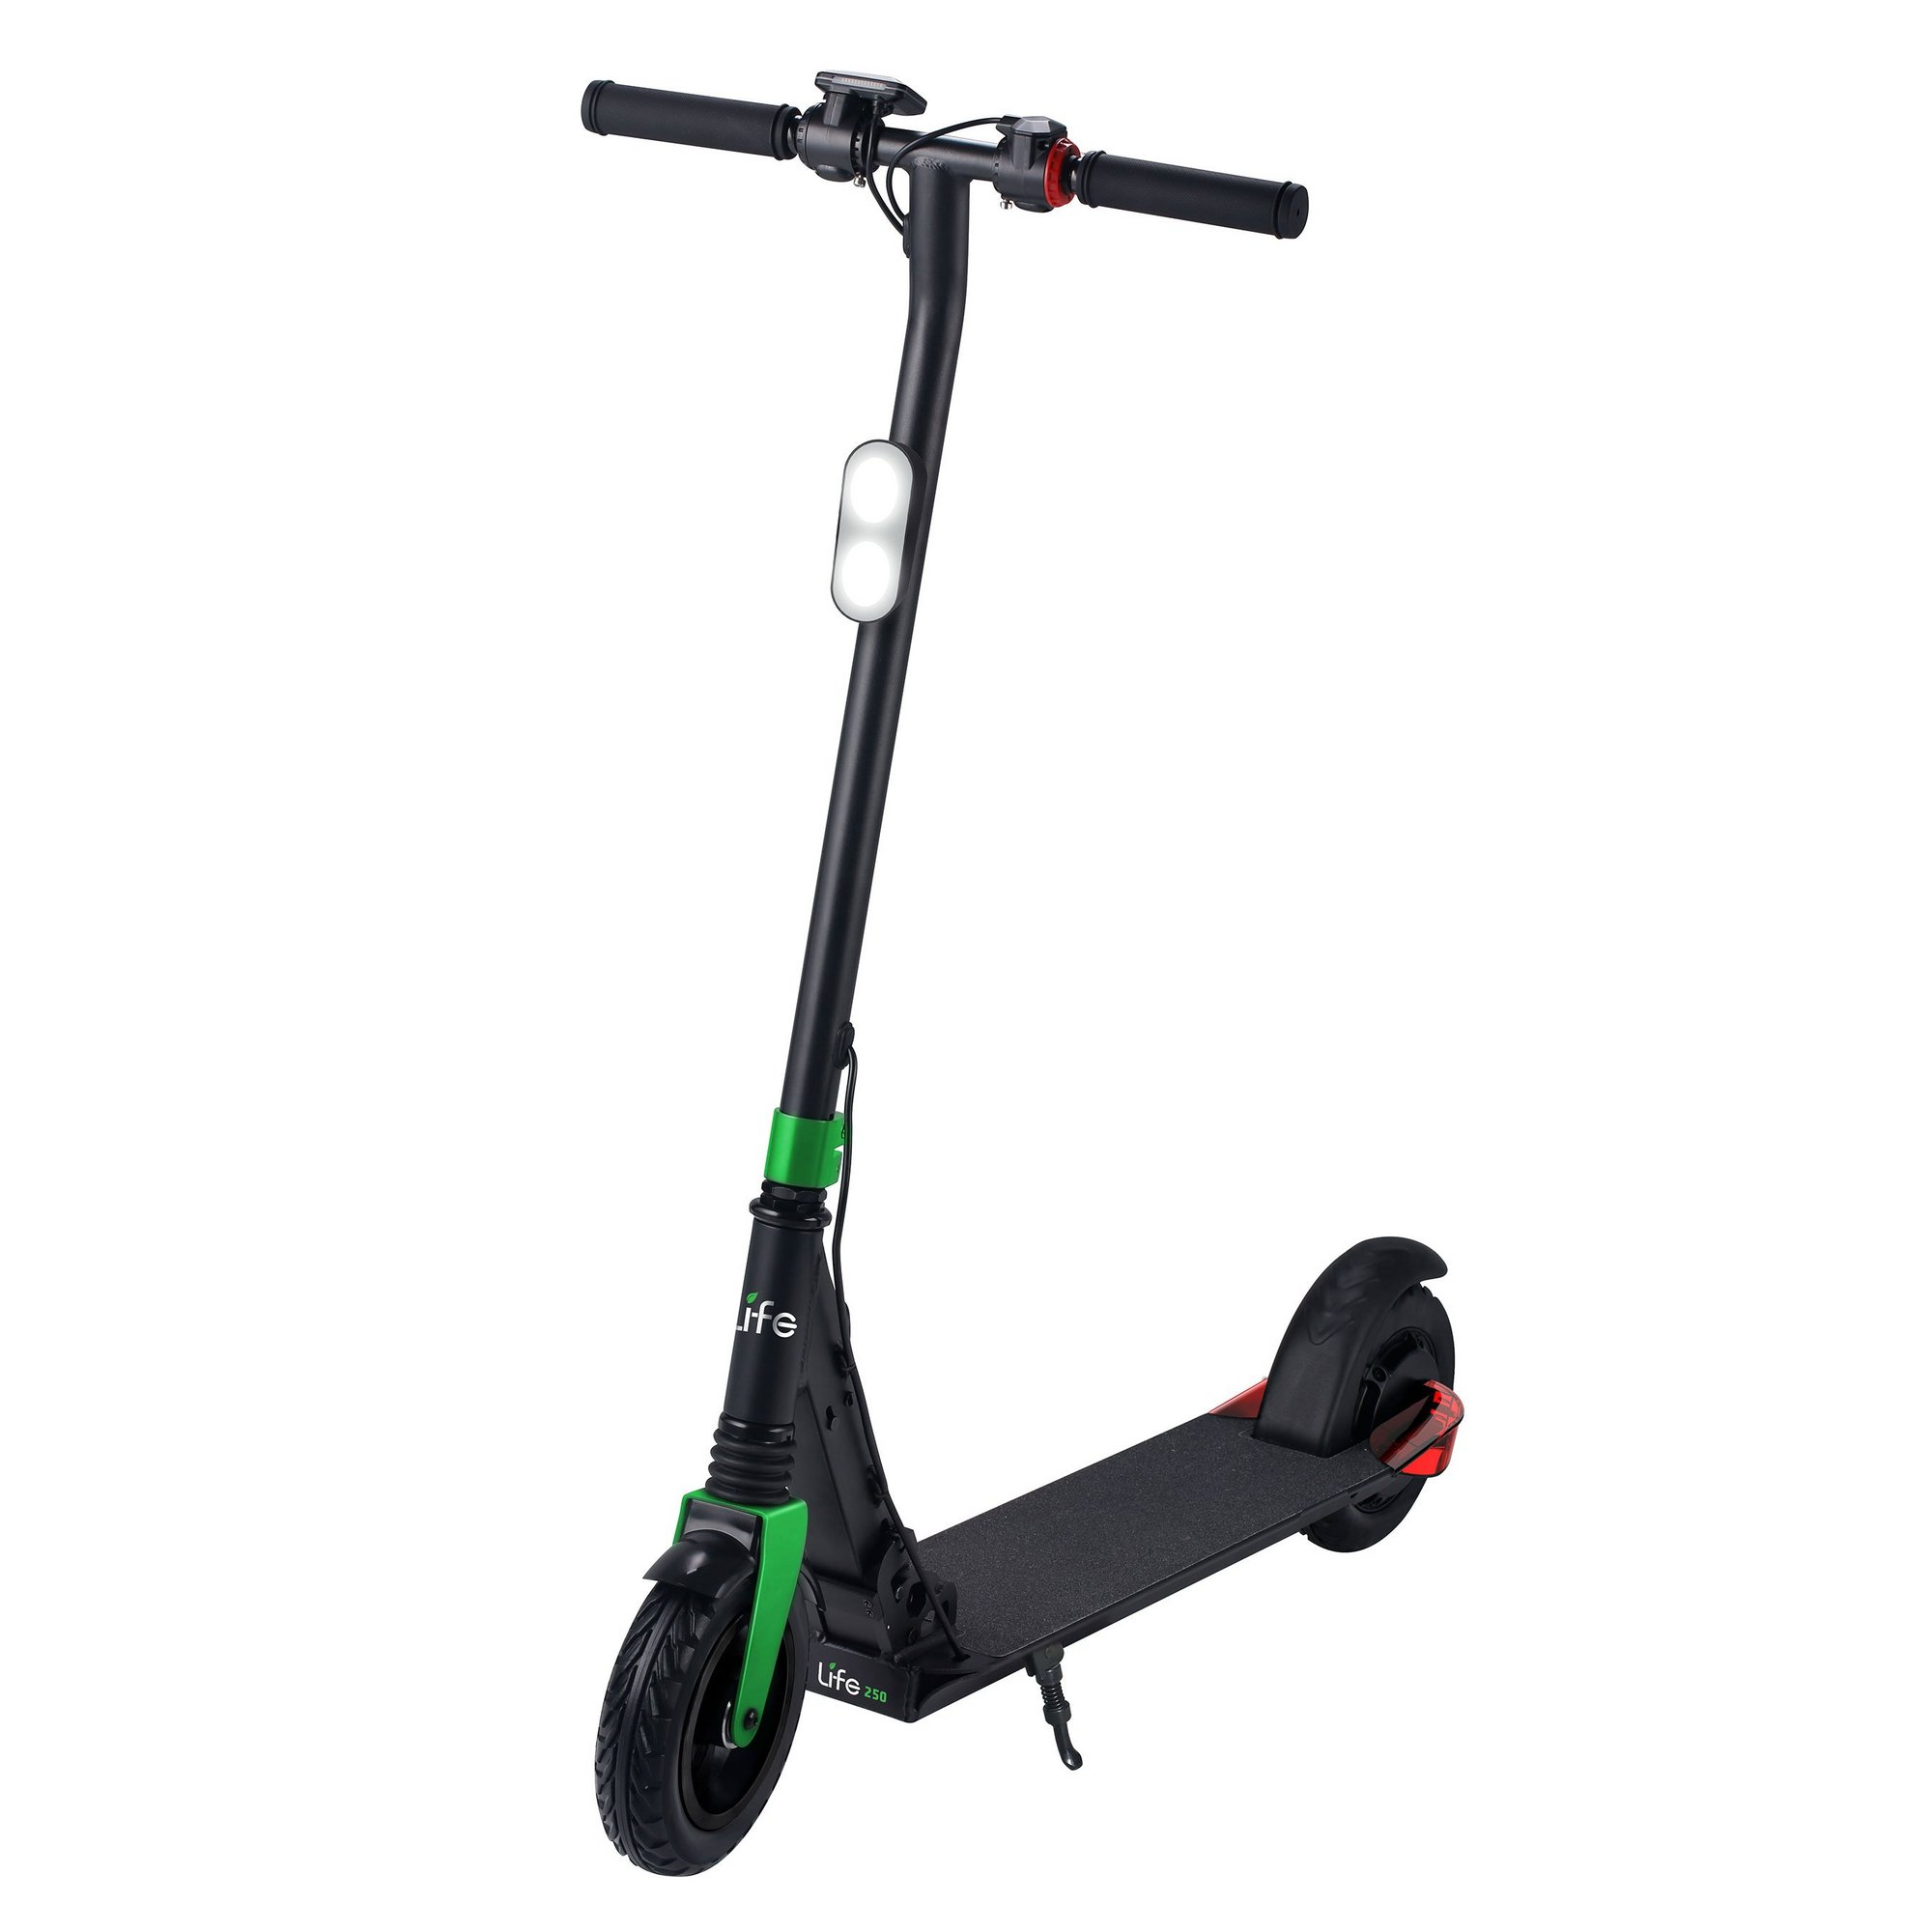 Image of Li-Fe 250 Lithium Scooter